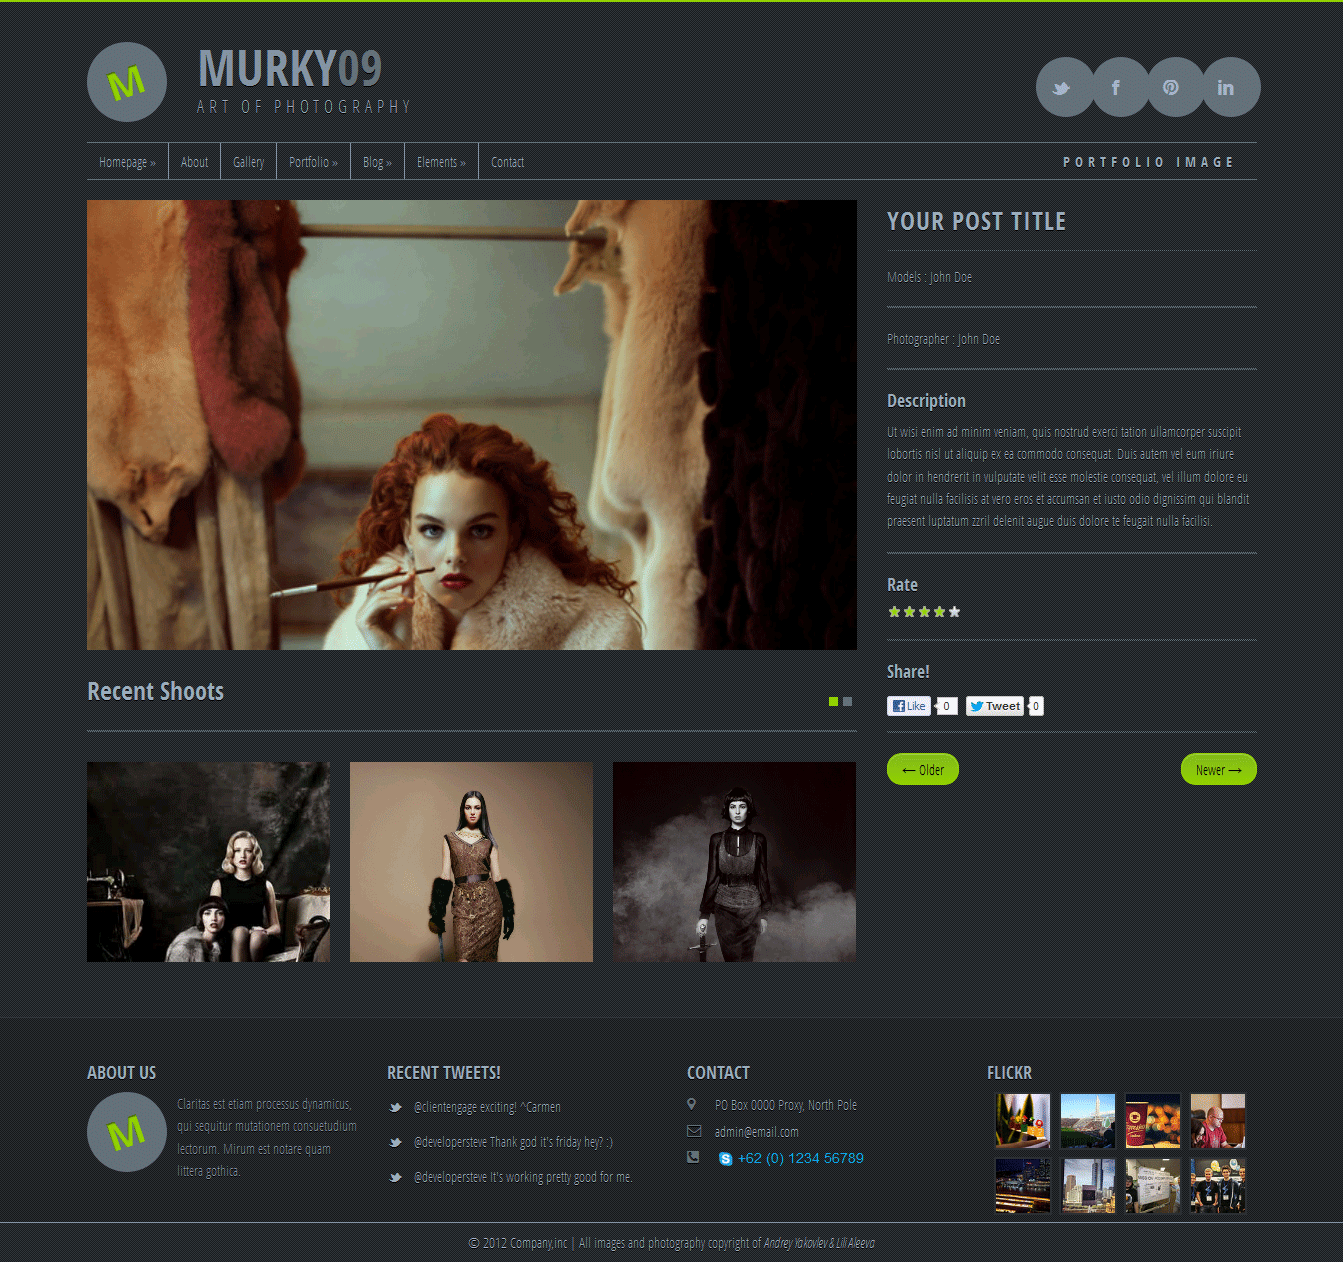 Murky09 - Portfolio and Photography Theme